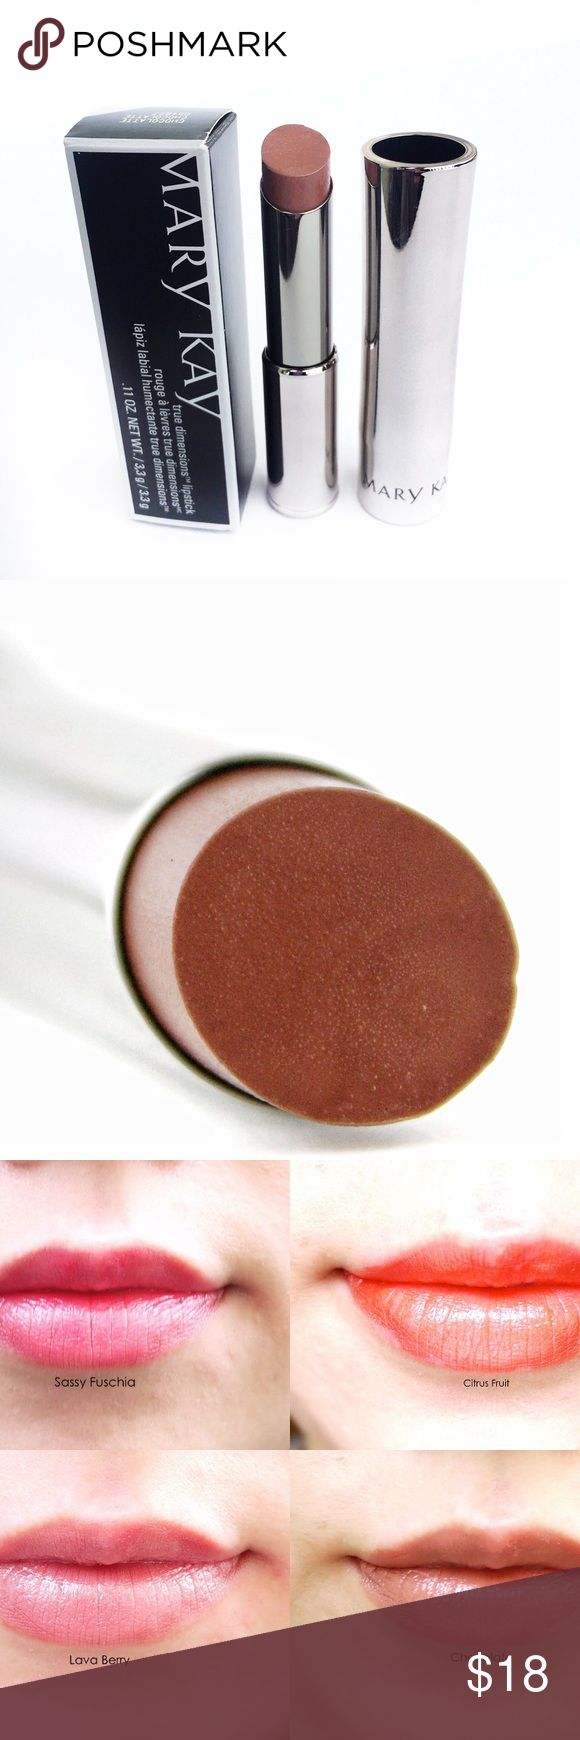 Mary kay true dimensions lipstick chocolate intensely moisturizing exquisitely smoothing it s like